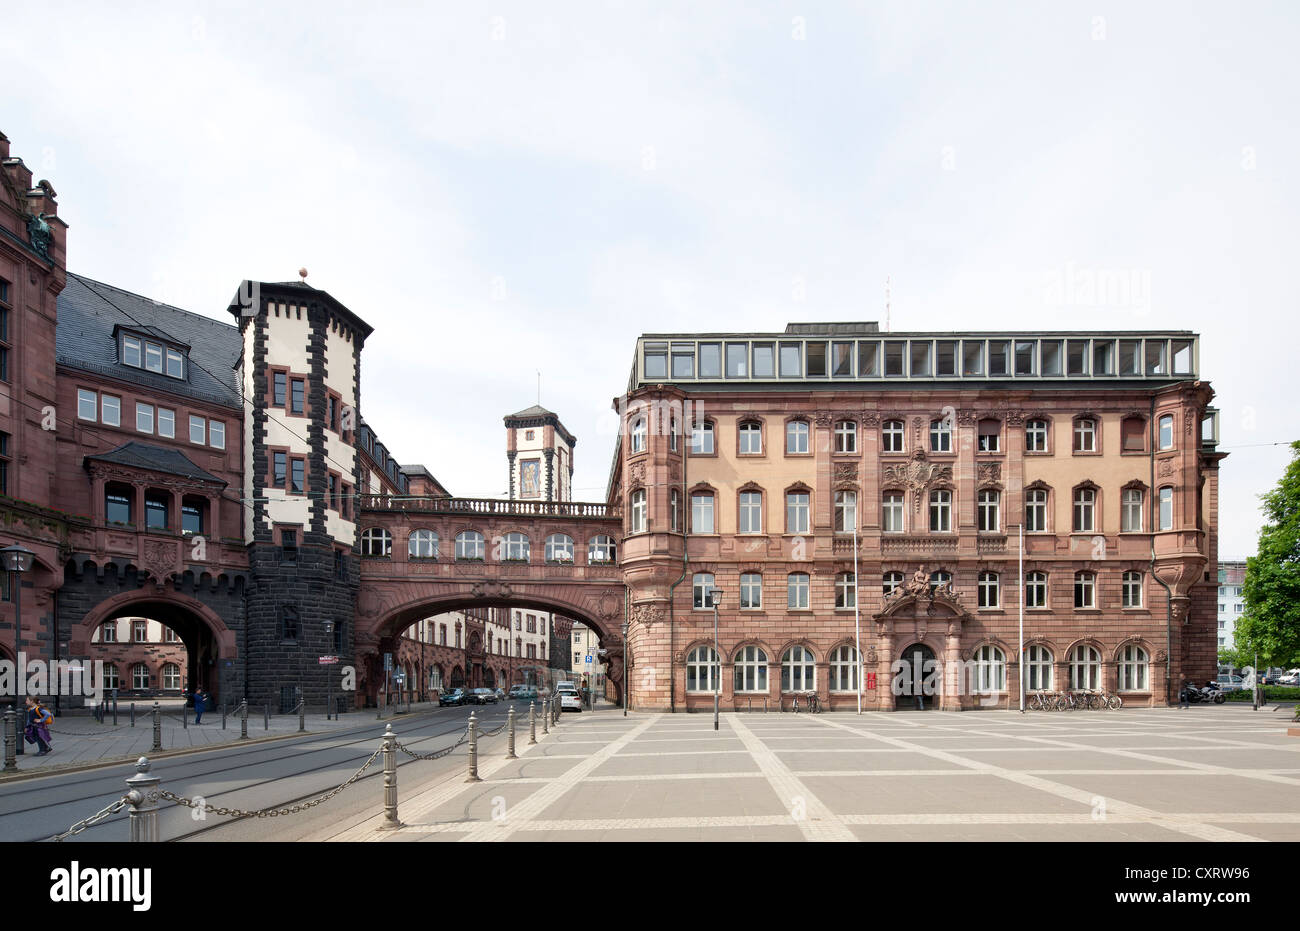 City Hall, extension of the Roemer building, north building with the Bridge of Sighs, Frankfurt am Main, Hesse, - Stock Image